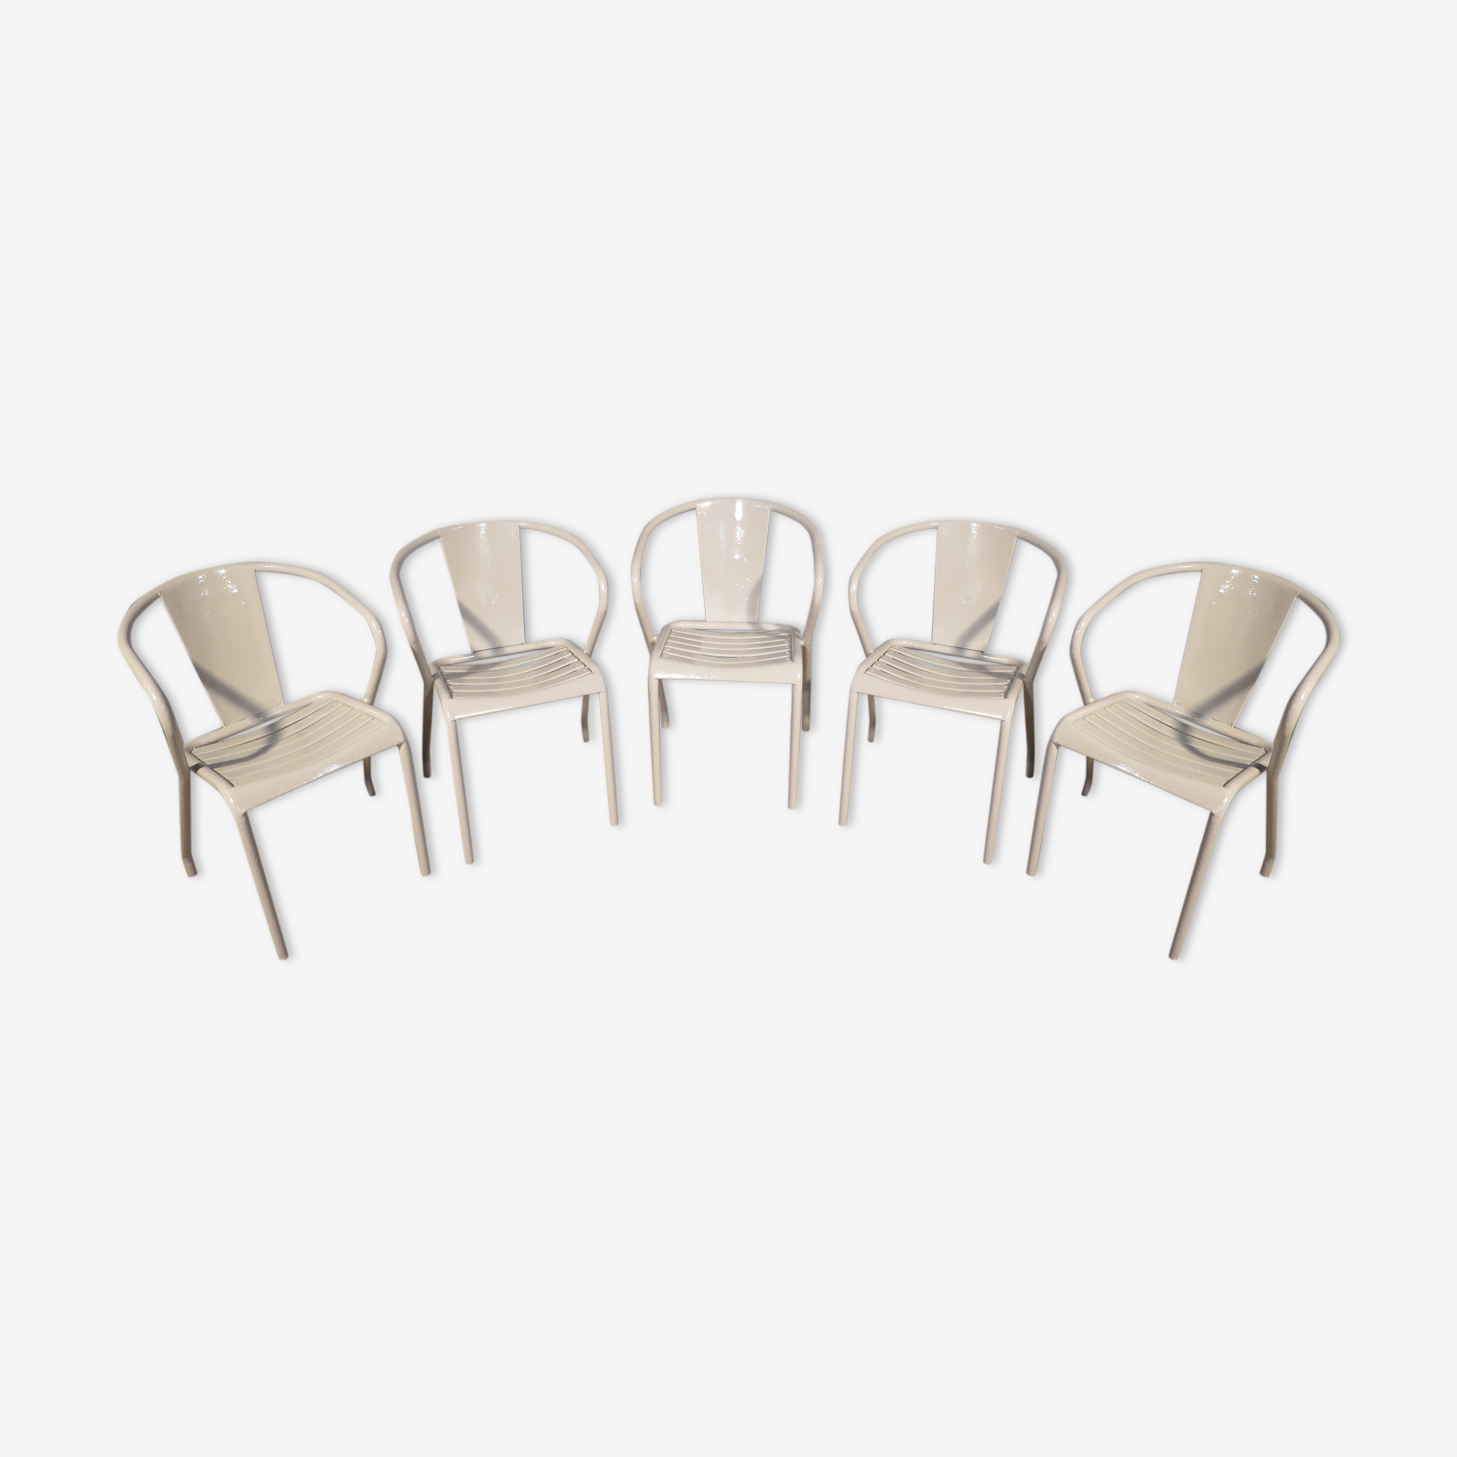 Tollix FT5 50s armchairs